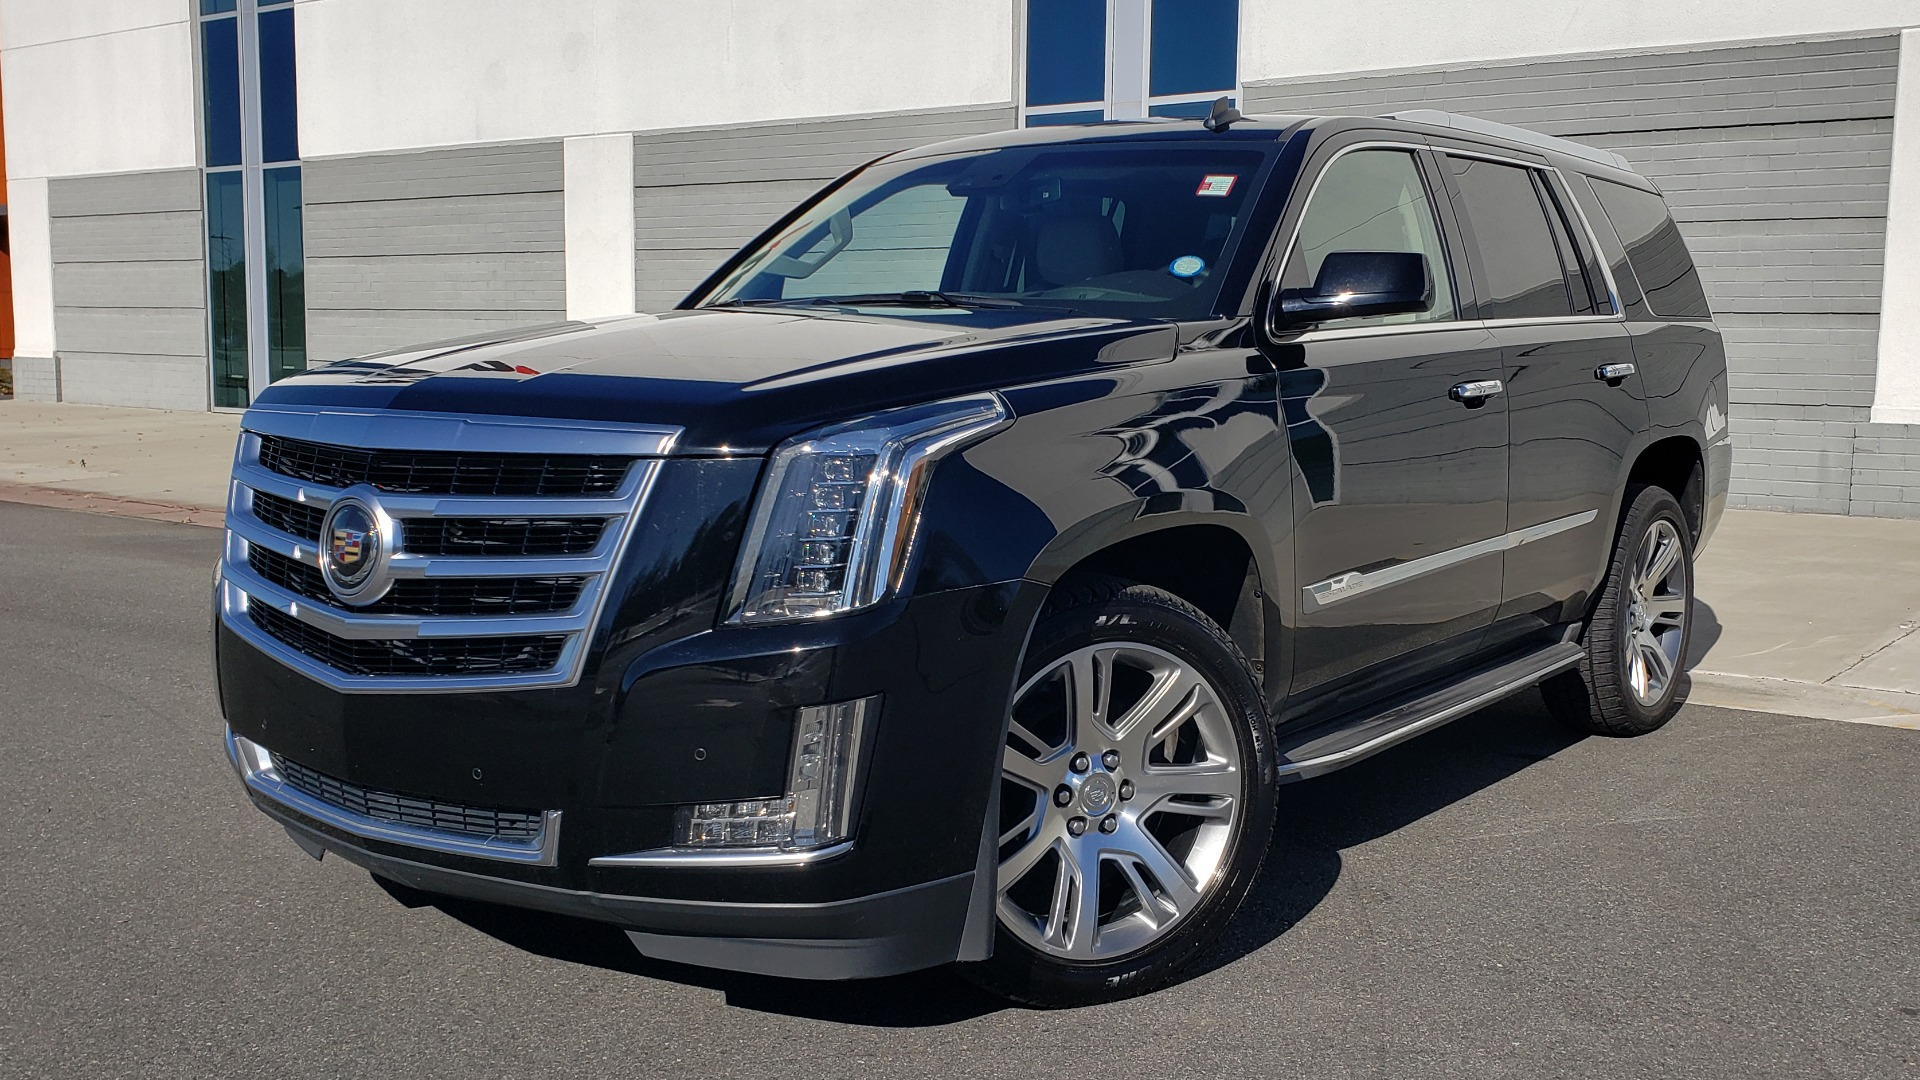 Used 2015 Cadillac ESCALADE PREMIUM 4WD / NAV / SUNROOF / REARVIEW / 3-ROW for sale $37,995 at Formula Imports in Charlotte NC 28227 1